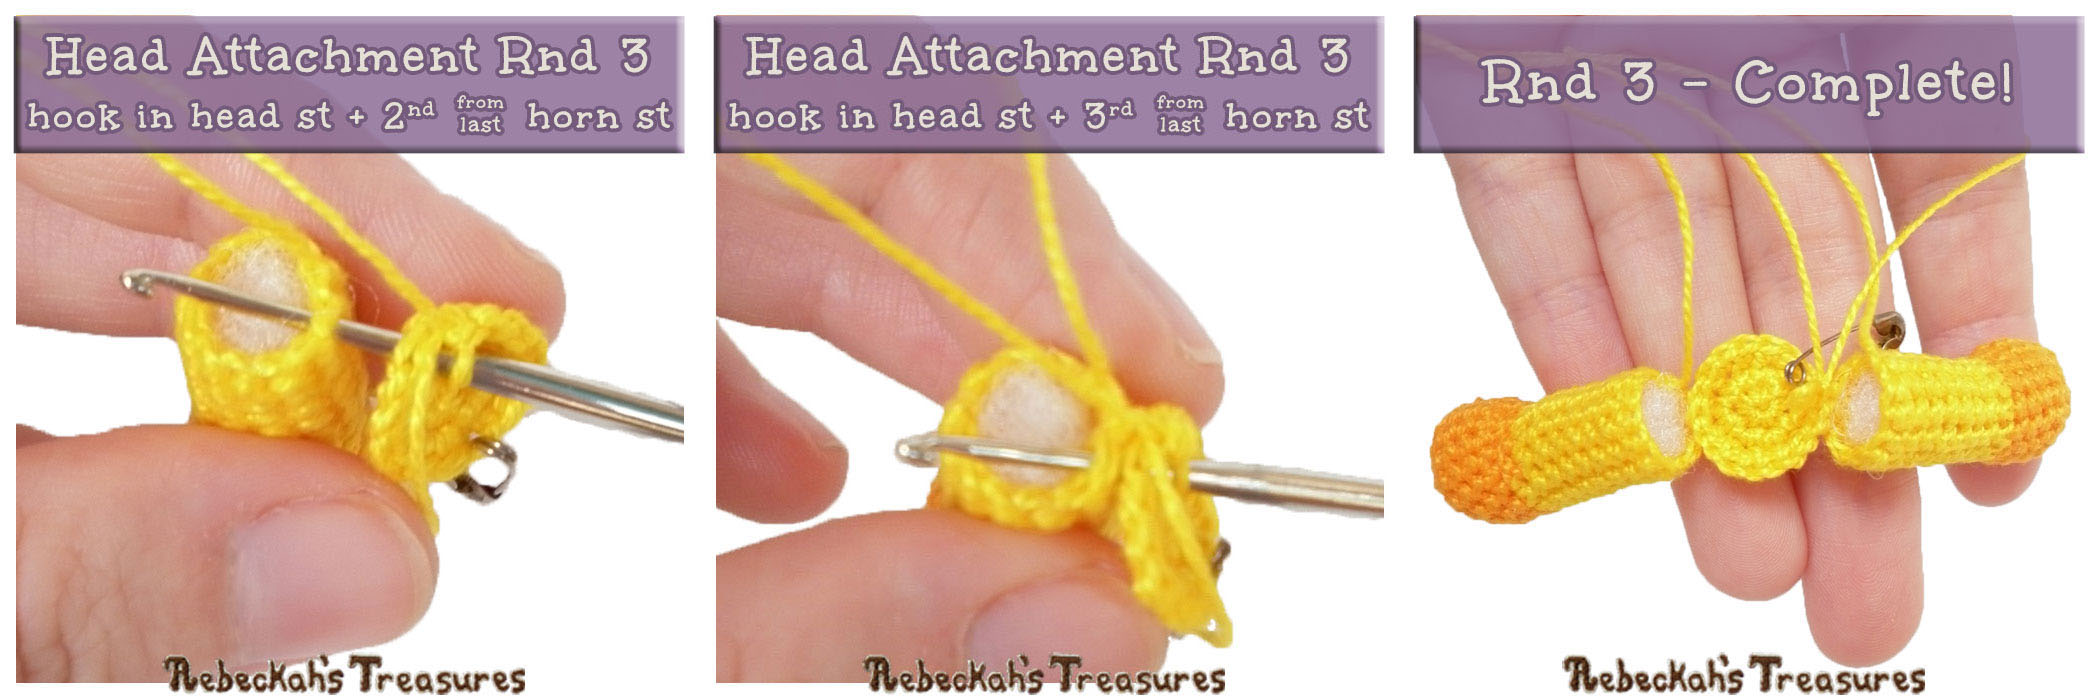 Rnd3 - #JoinAsYouGo Tutorial Photos | #Otis #Giraffe - #Amigurumi Crochet-A-Long by @beckastreasures | #OtisGiraffeCAL Part 6: HEAD & FINISHING TOUCHES - Watch the #Video #Tutorial AND #Download the crochet pattern for this part of the #CAL in #English #Dansk #Nederlands #Deutsche #עִברִית #Español & #Svenska! | #crochet #pattern #April #YouTube